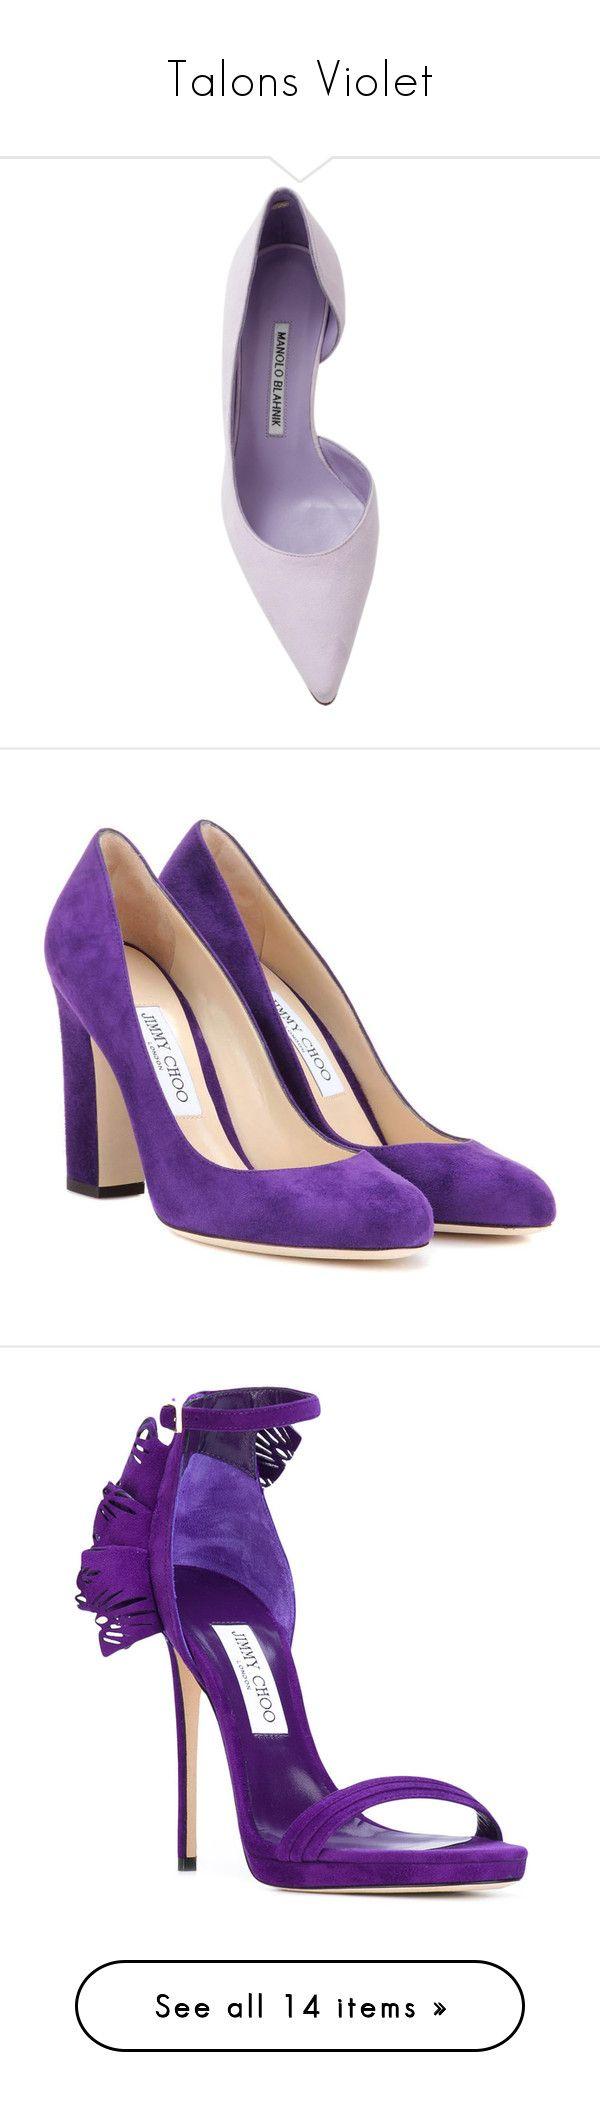 """""""Talons Violet"""" by liligwada ❤ liked on Polyvore featuring shoes, pumps, heels, manolo blahnik, manolo blahnik pumps, mid-heel pumps, heel pump, manolo blahnik shoes, обувь and purple"""